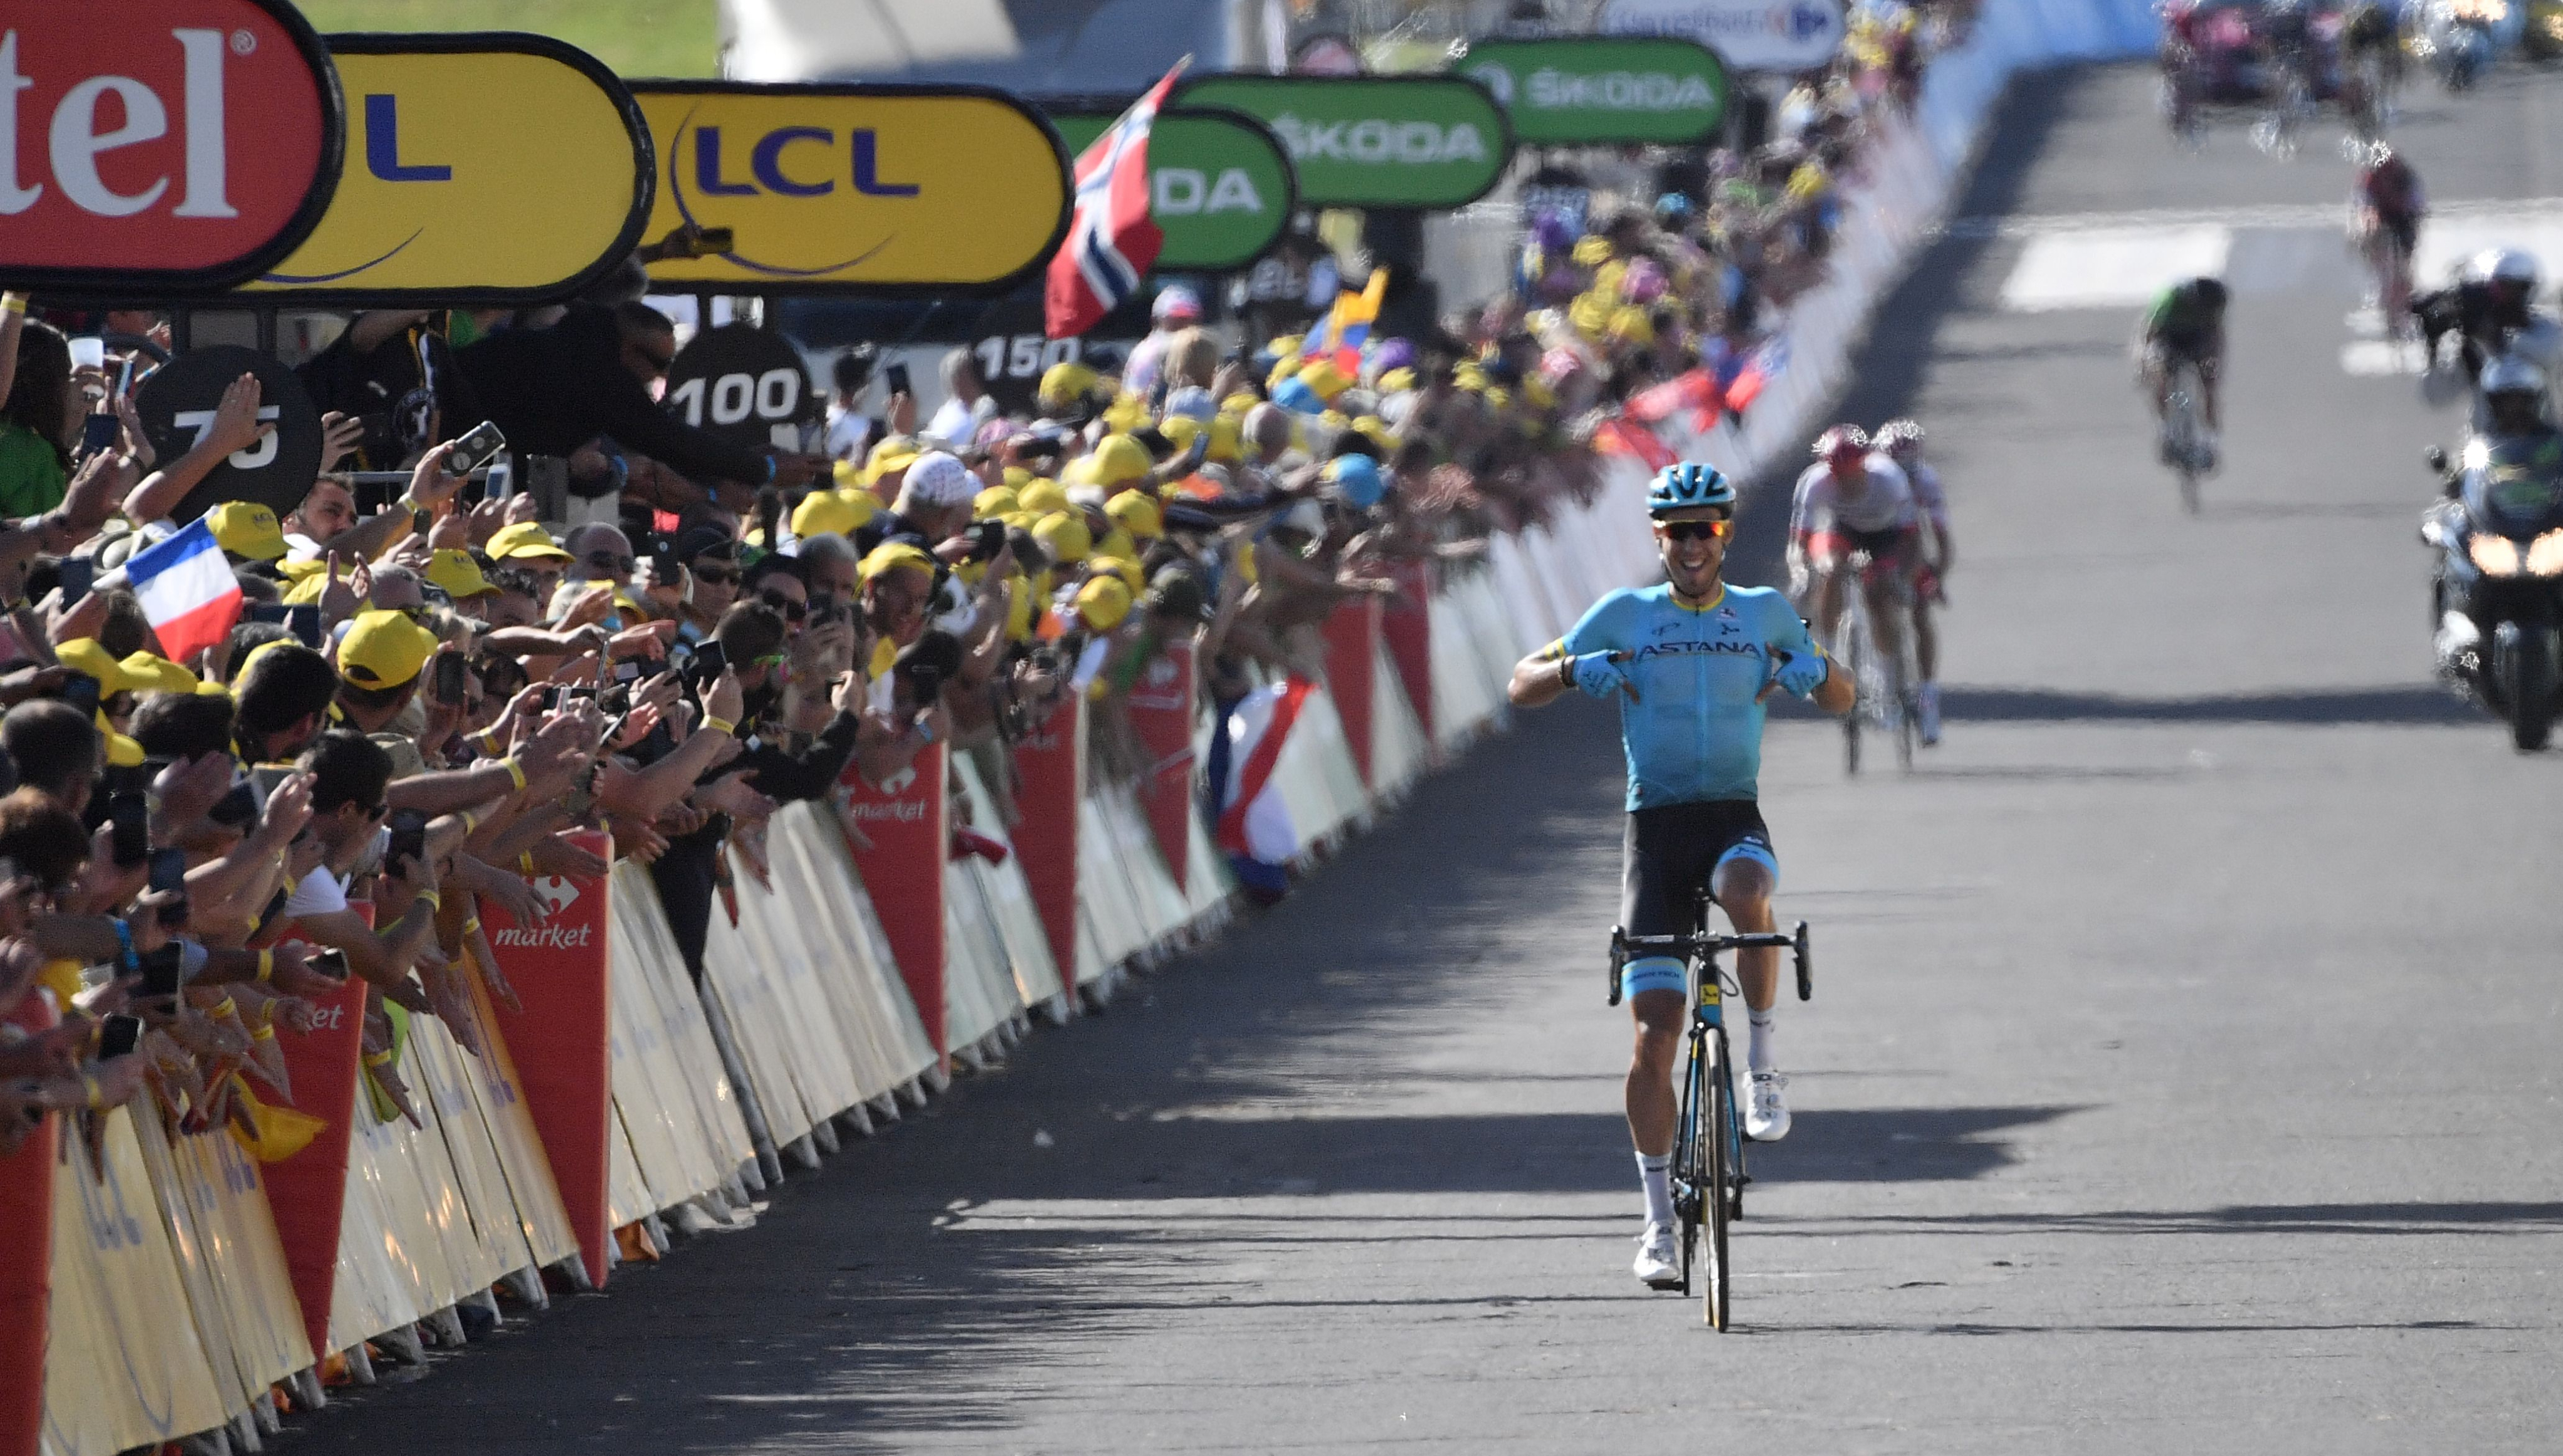 Omar Fraile claims Stage 14 victory as Team Sky s Geraint Thomas retains  yellow jersey at Tour de France df53b7907